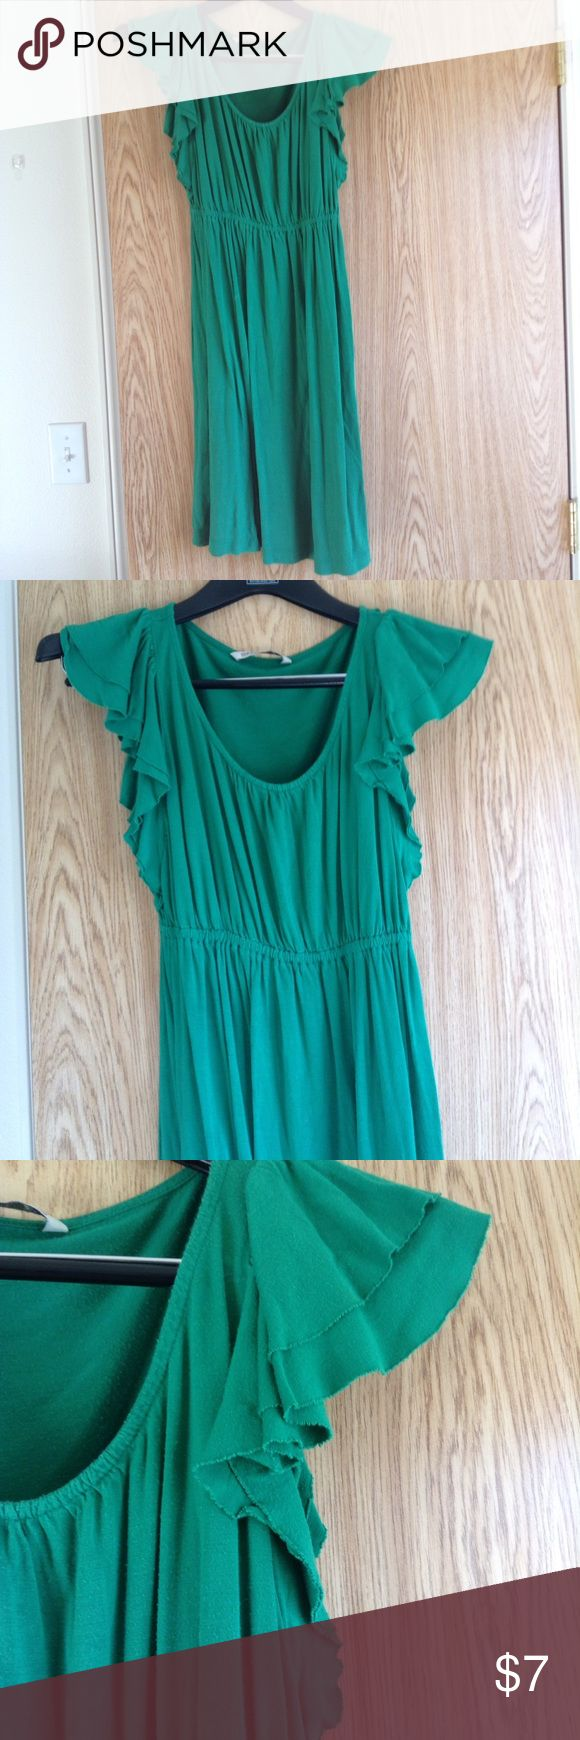 Old Navy Casual Green Dress What's easier to wear than a soft, flowy, dress? This is a beautiful green hue with a fun ruffled detail on the sleeves. The band at the waist makes it figure-flattering. It is in great shape and ready to wear. Old Navy Dresses